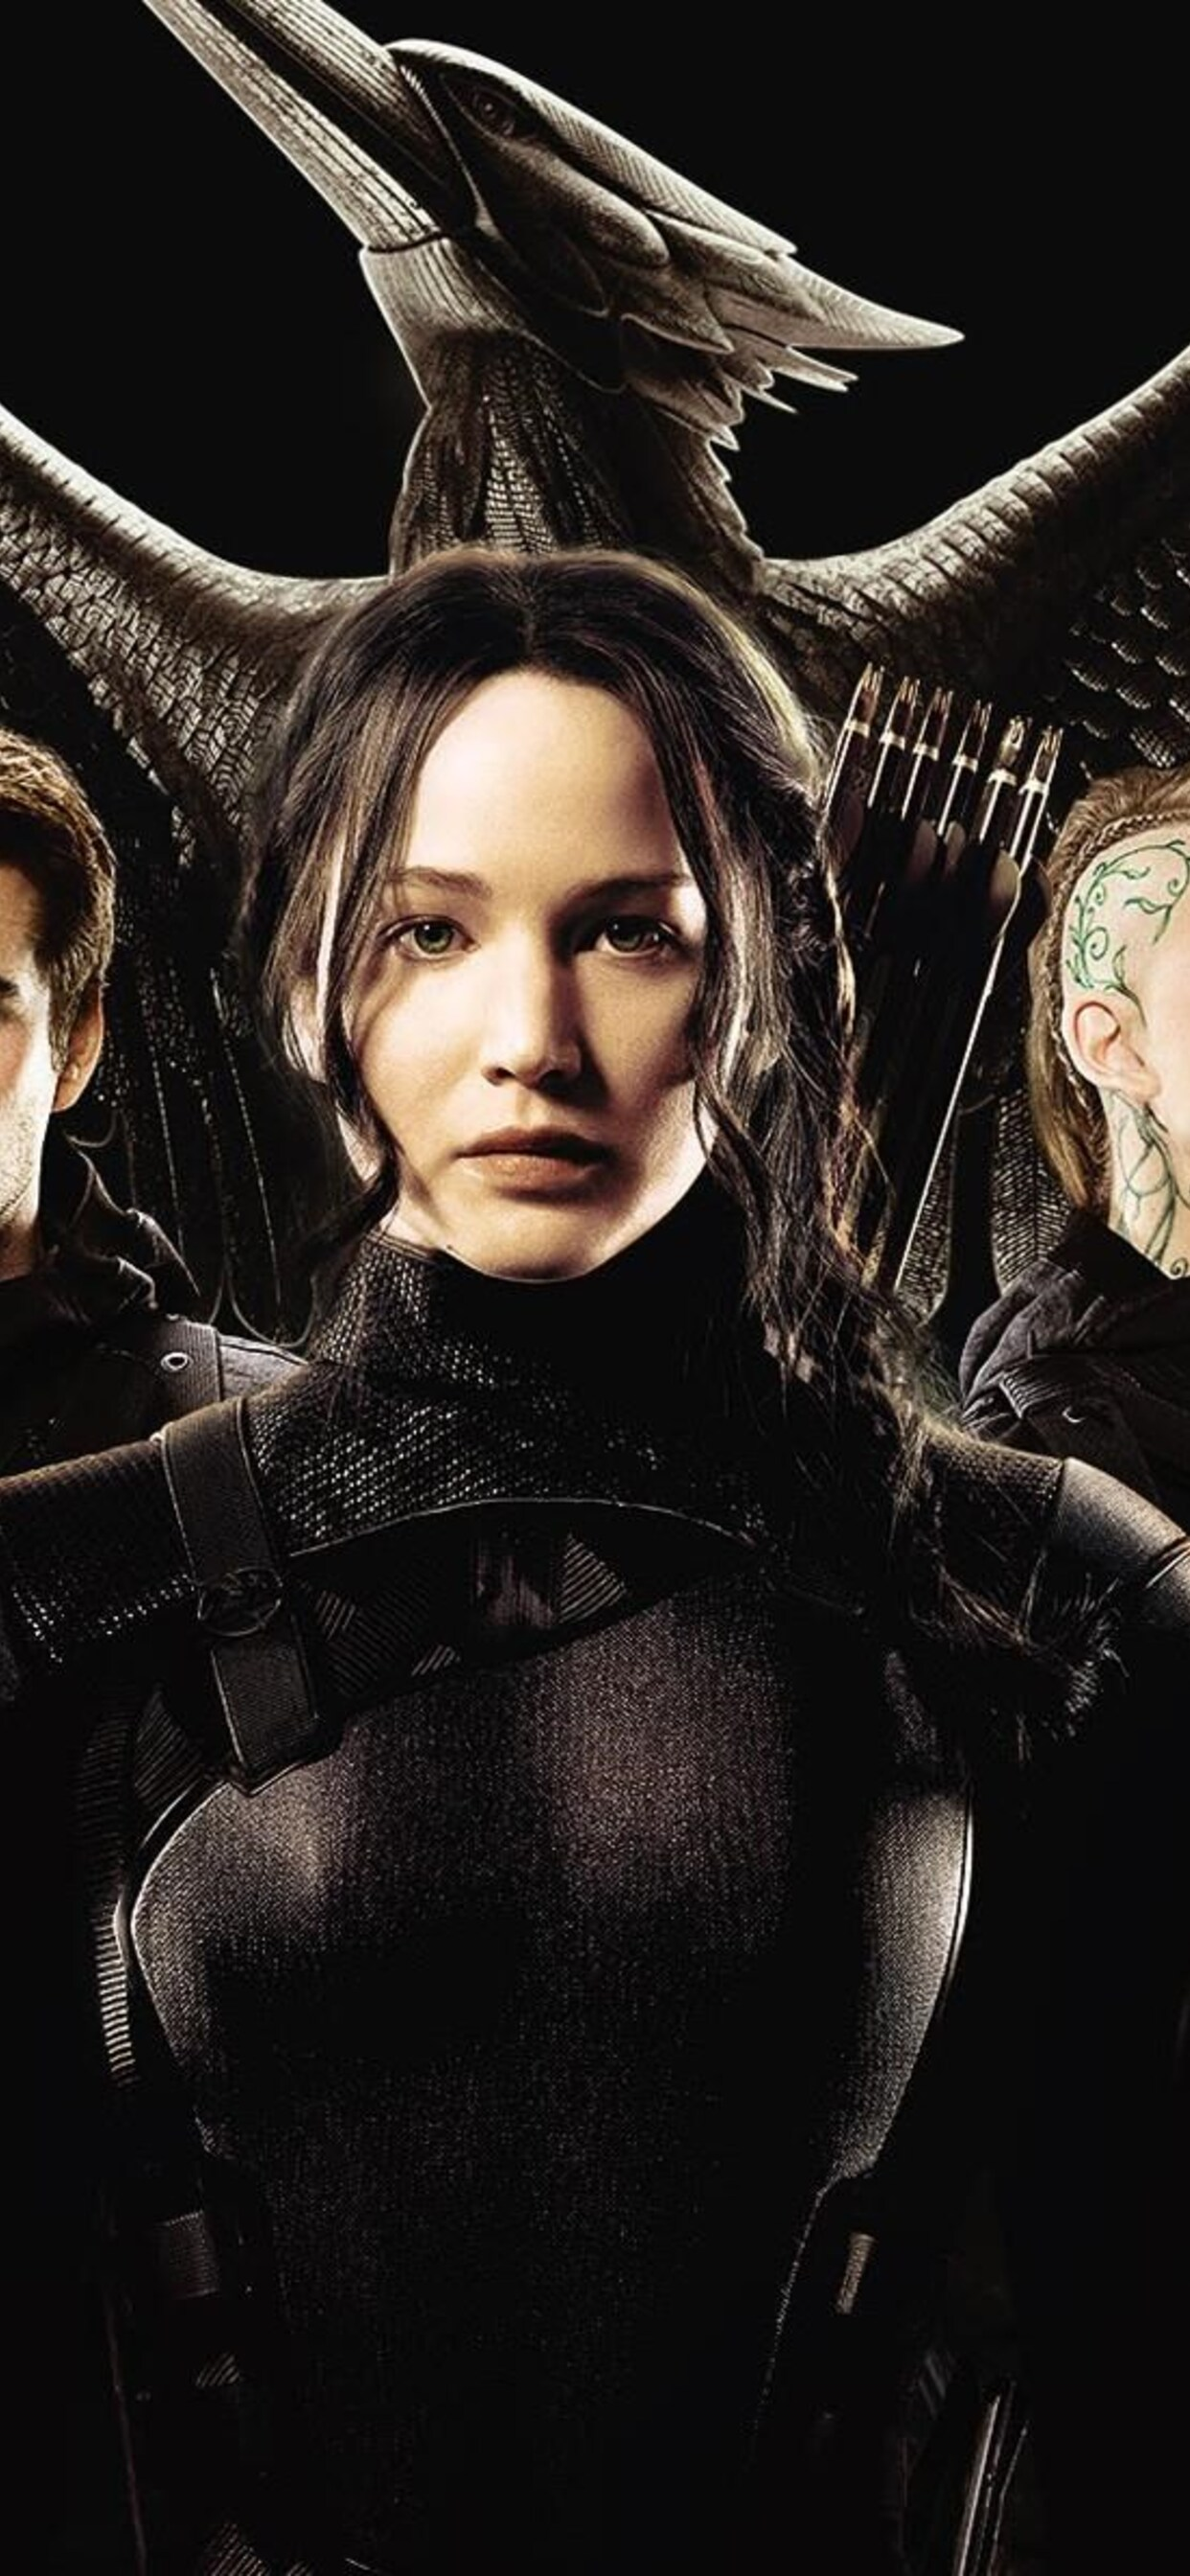 1242x2688 The Hunger Games Mockingjay Part 1 Movie Iphone Xs